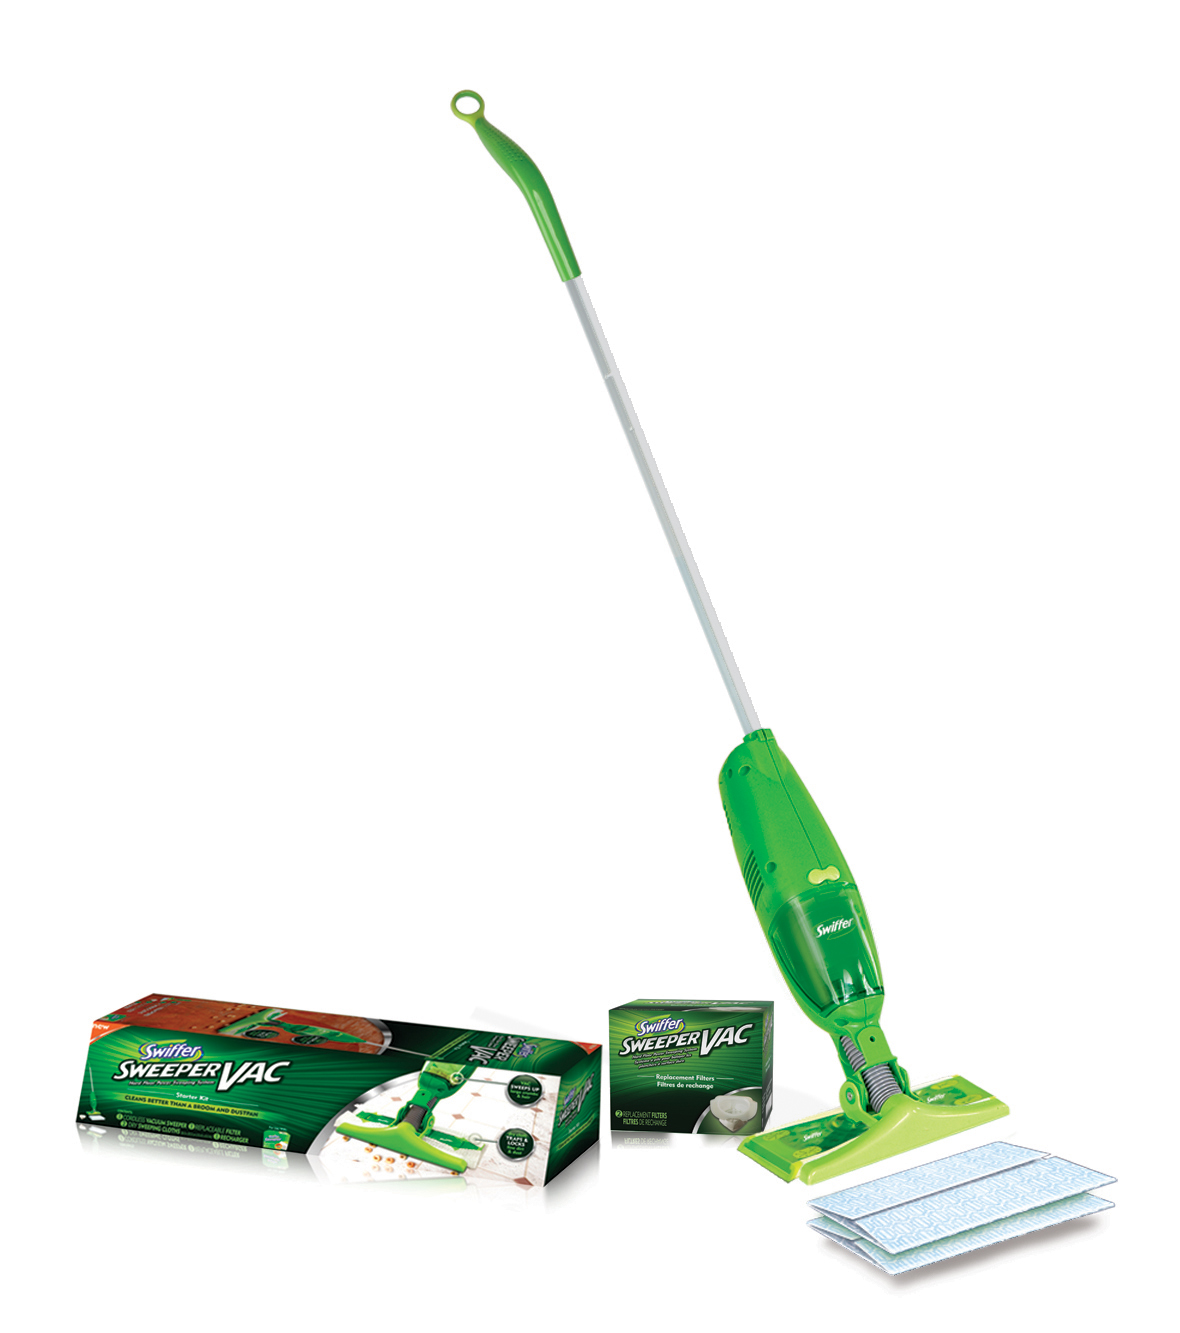 received a really great product to review. I received the Swiffer ...